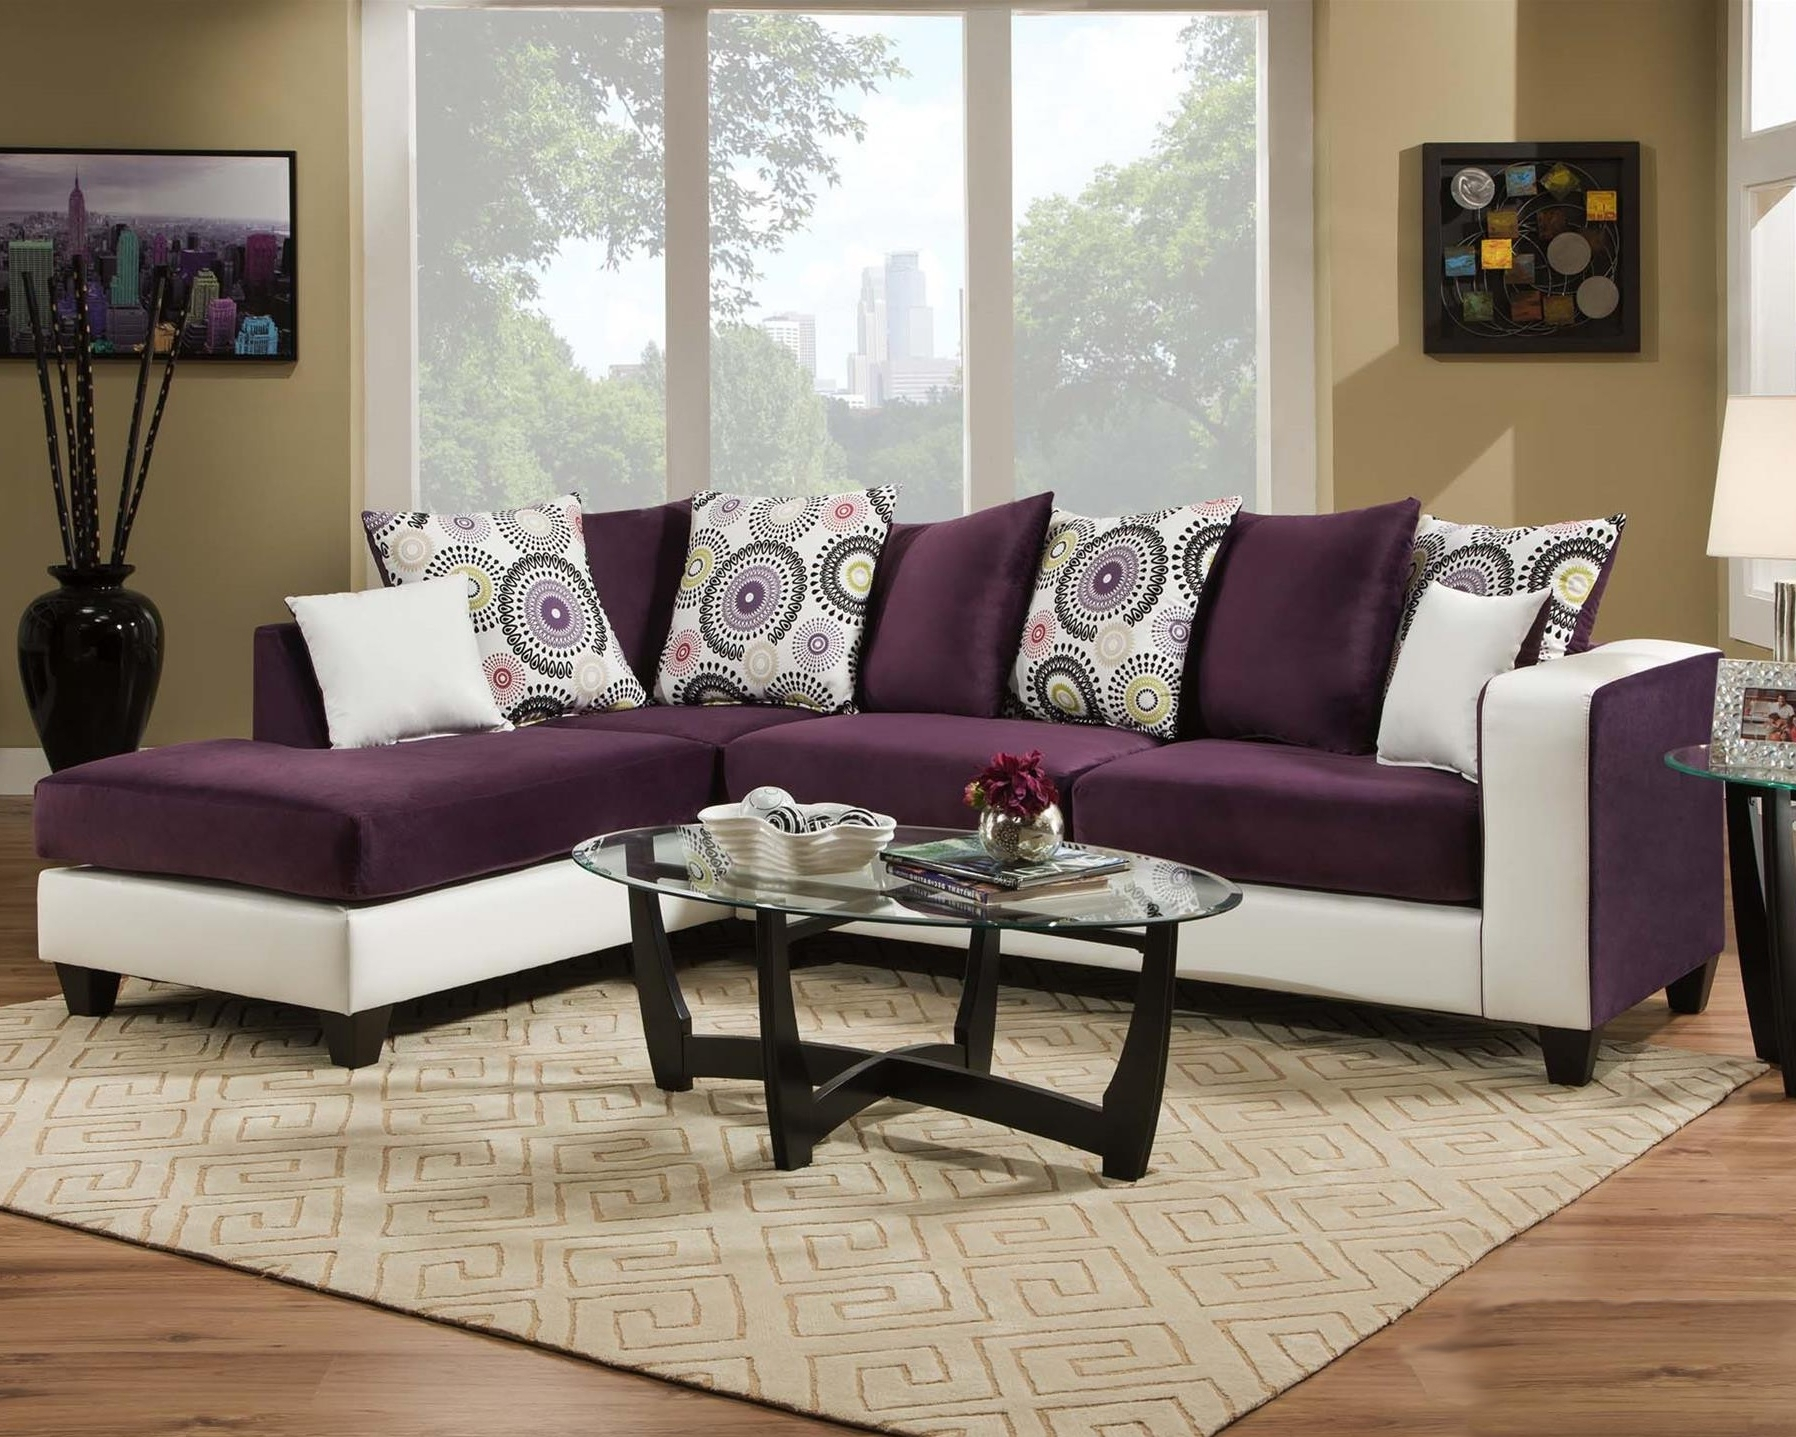 Preferred Delta : Discount Furniture Online Store, Discounted Furniture In With Regard To Dallas Texas Sectional Sofas (View 11 of 15)